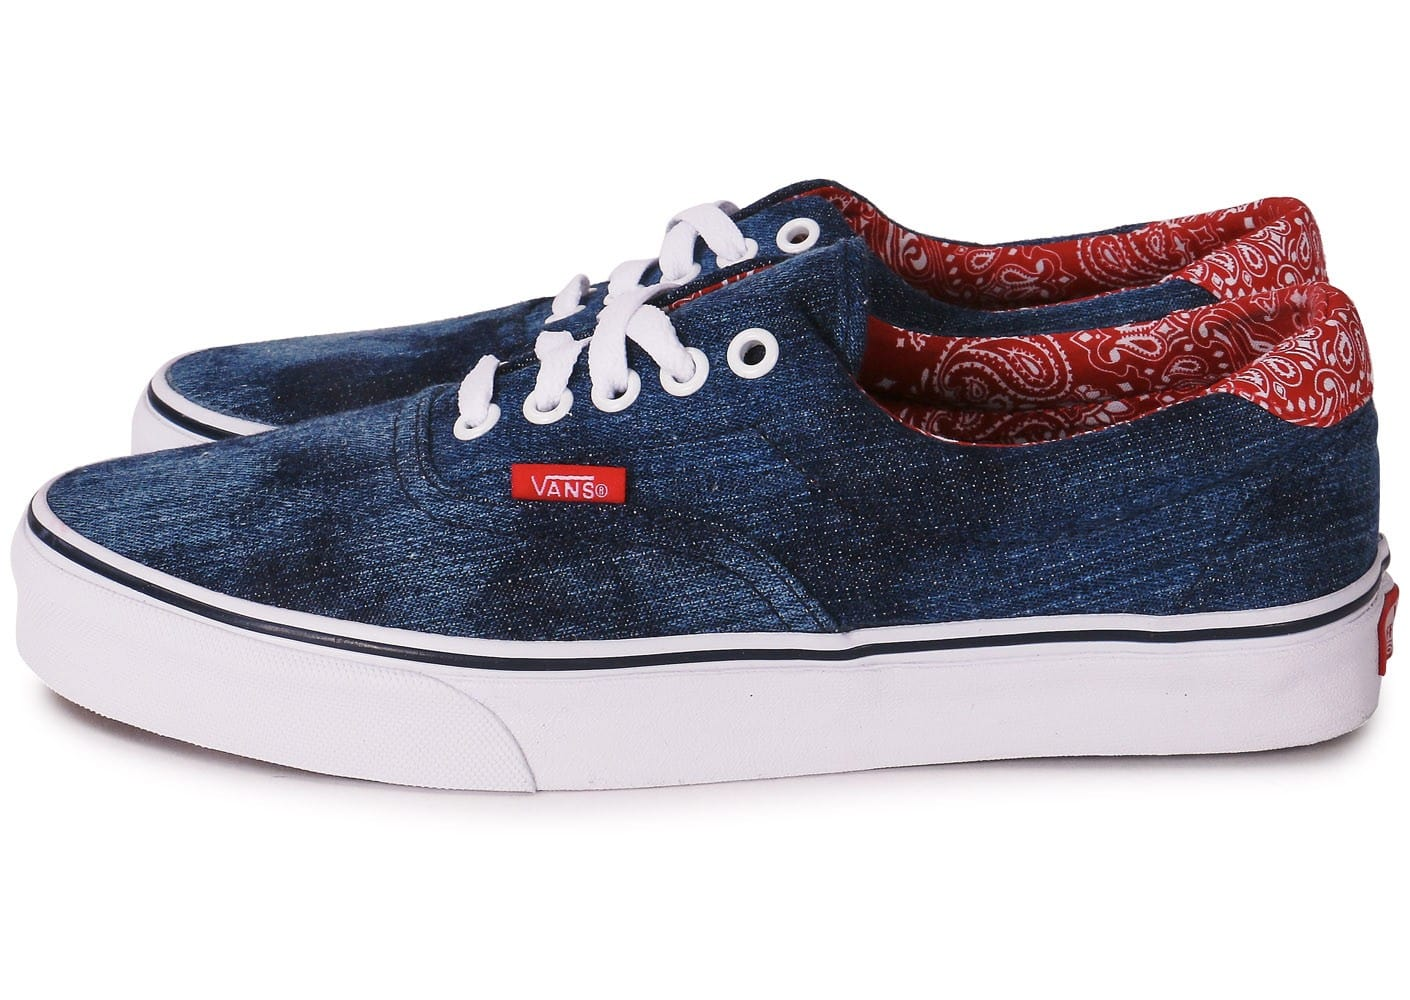 Chaussures Vans Era homme Red Rose hysXEICc27